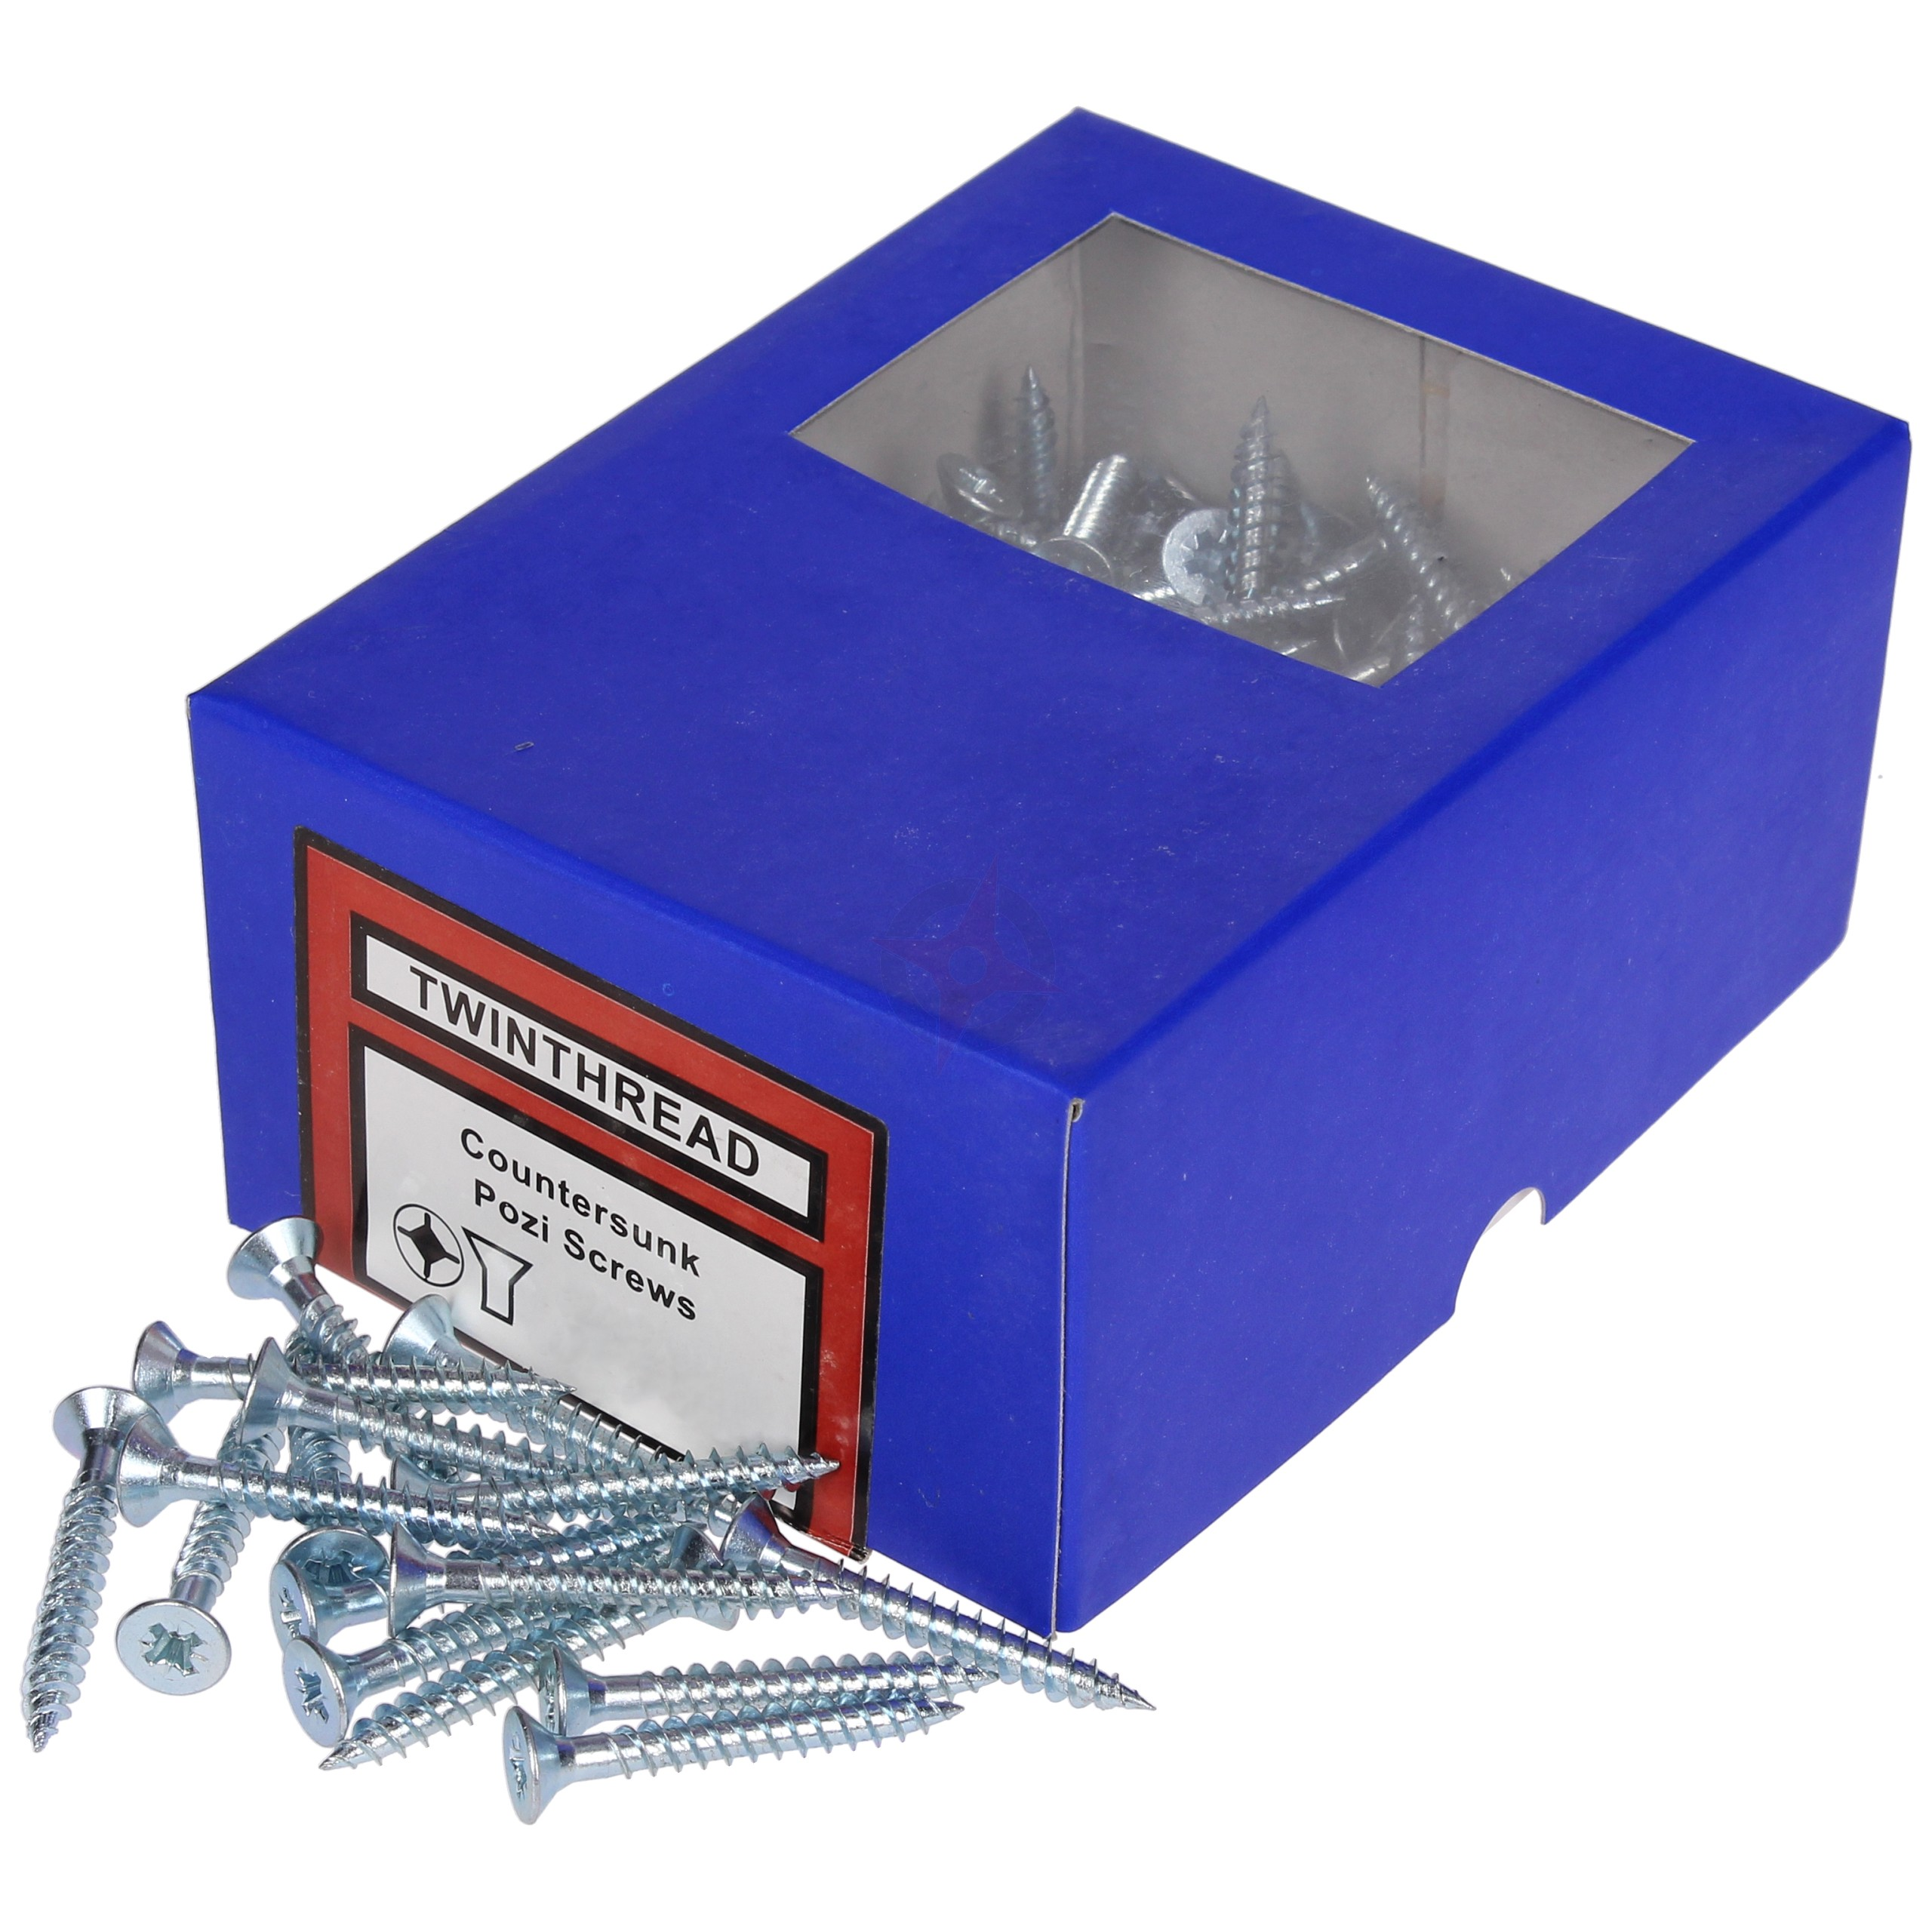 "1.1/2"" x 10 Twinthread Countersunk Pozi Woodscrew (box of 200)"